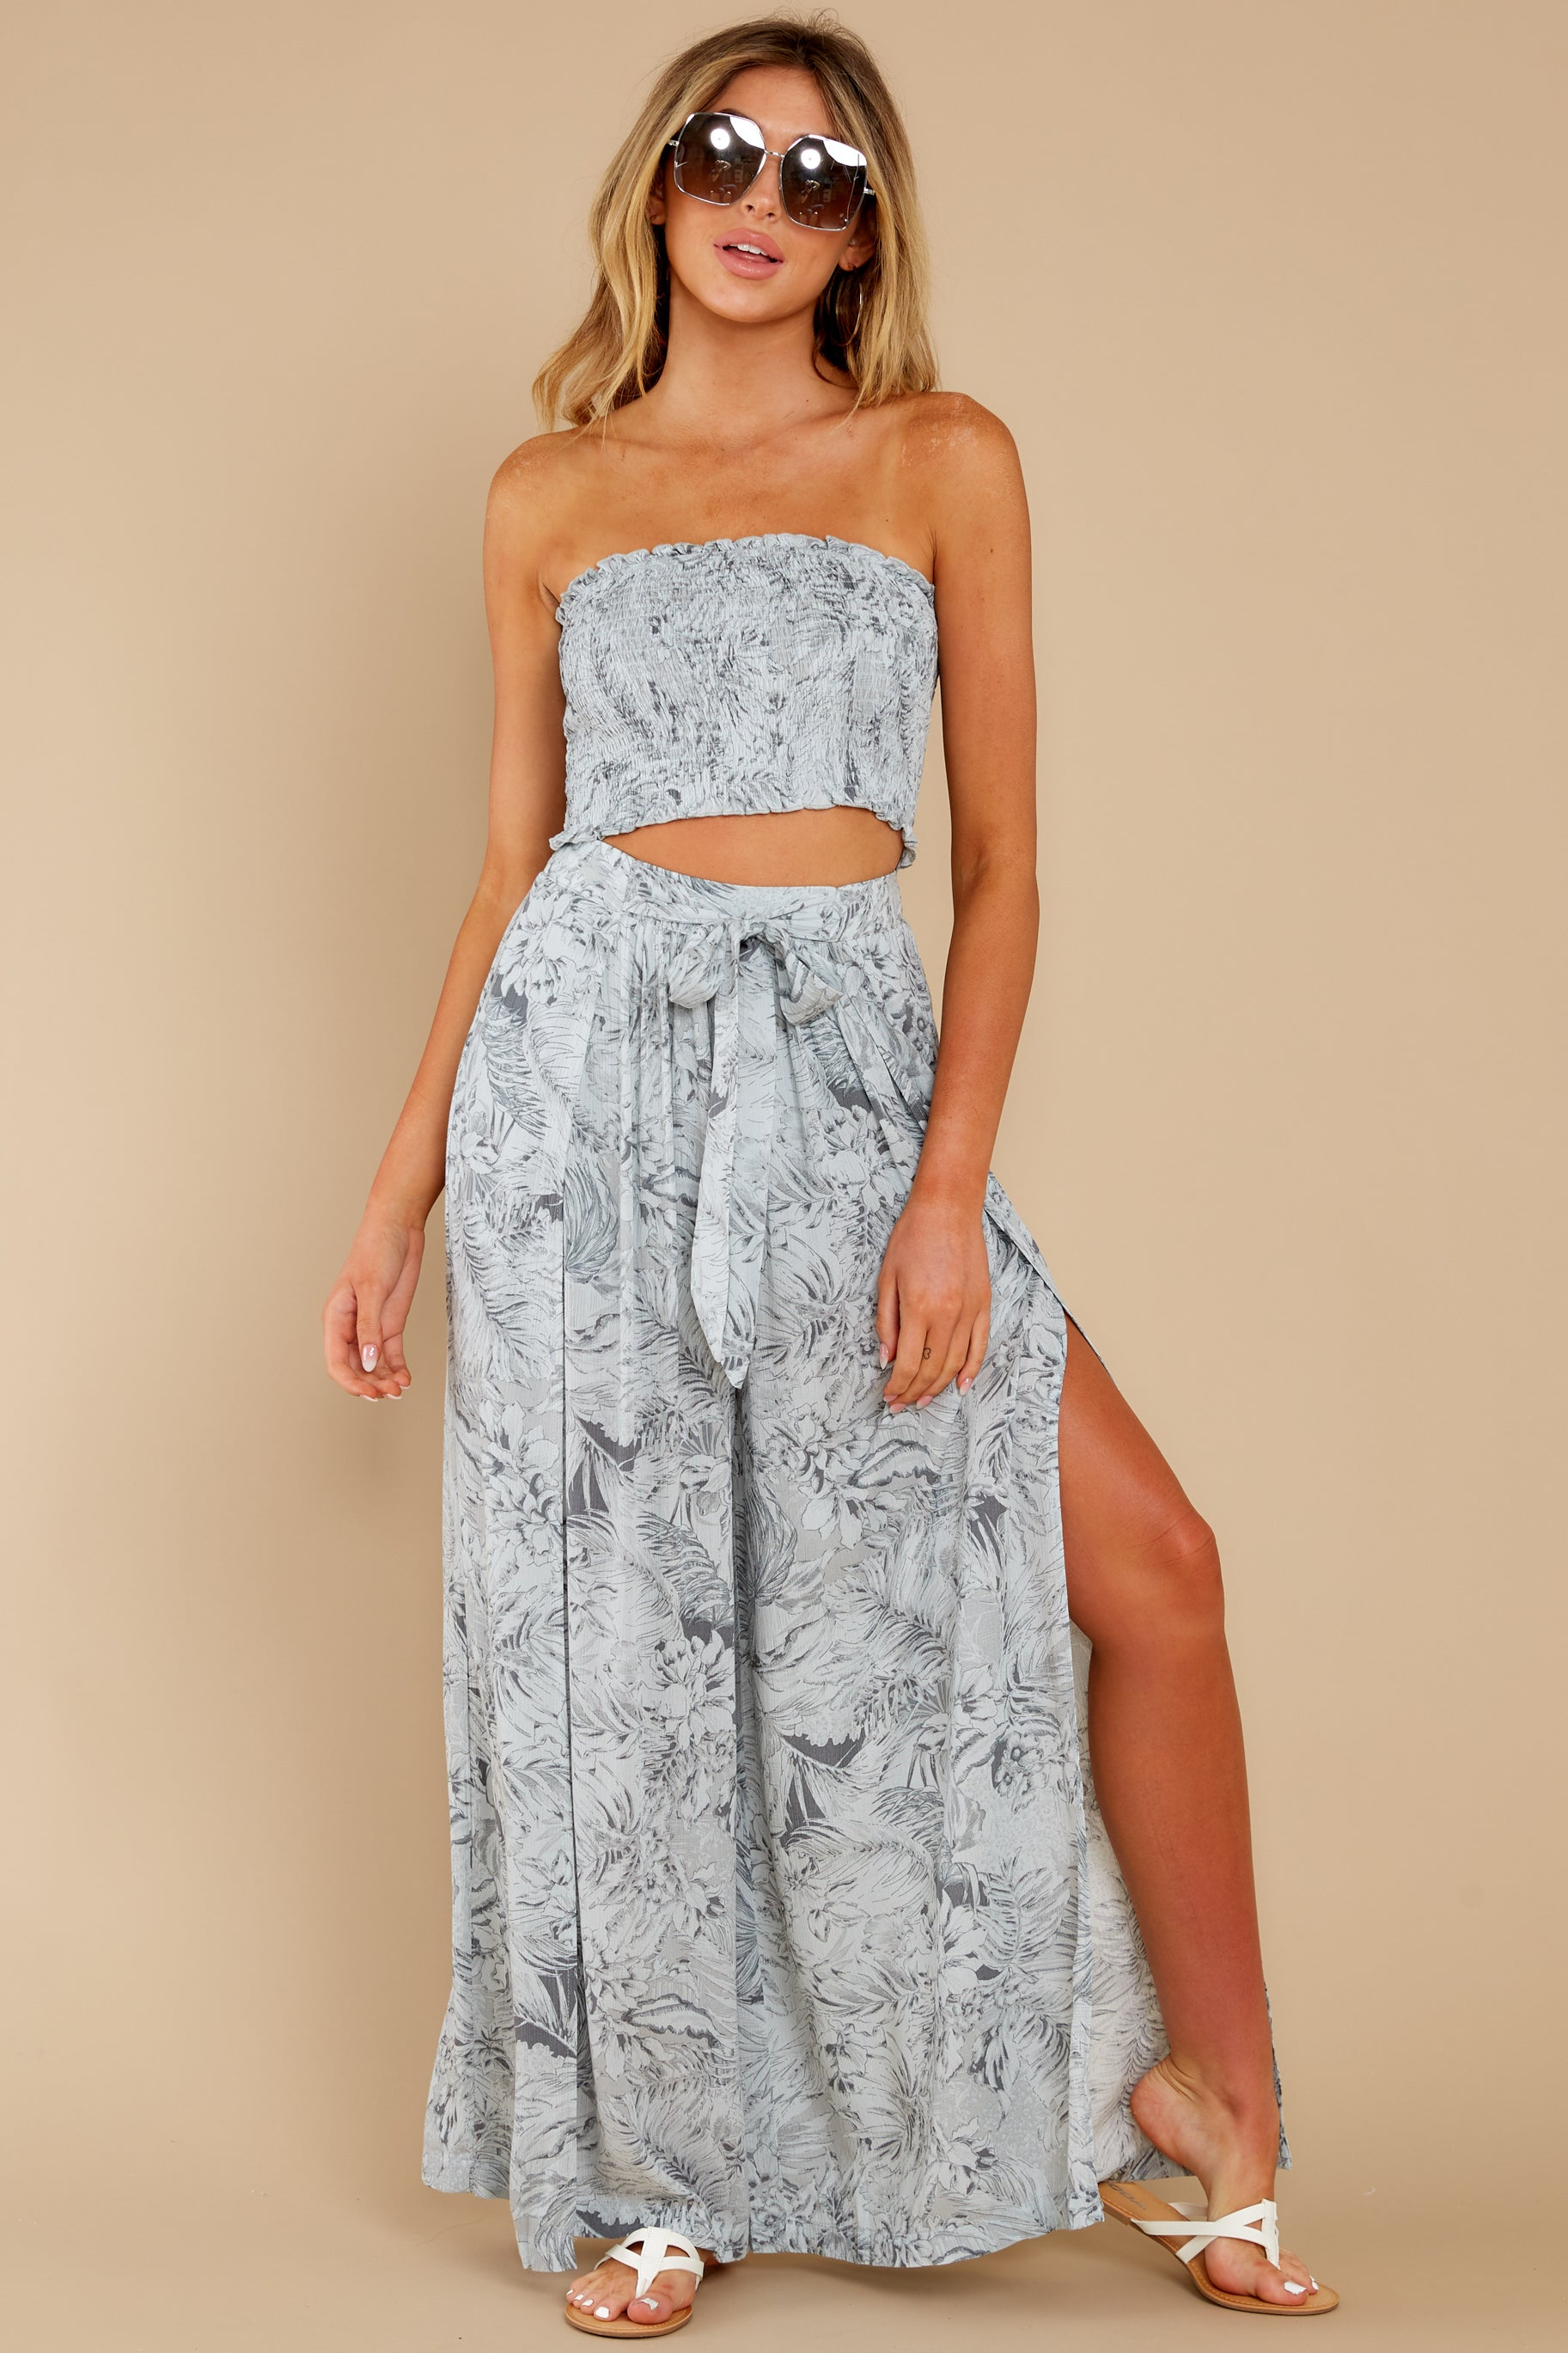 3 Under The Palms Dove Grey Tropical Print Two Piece Set at reddress.com